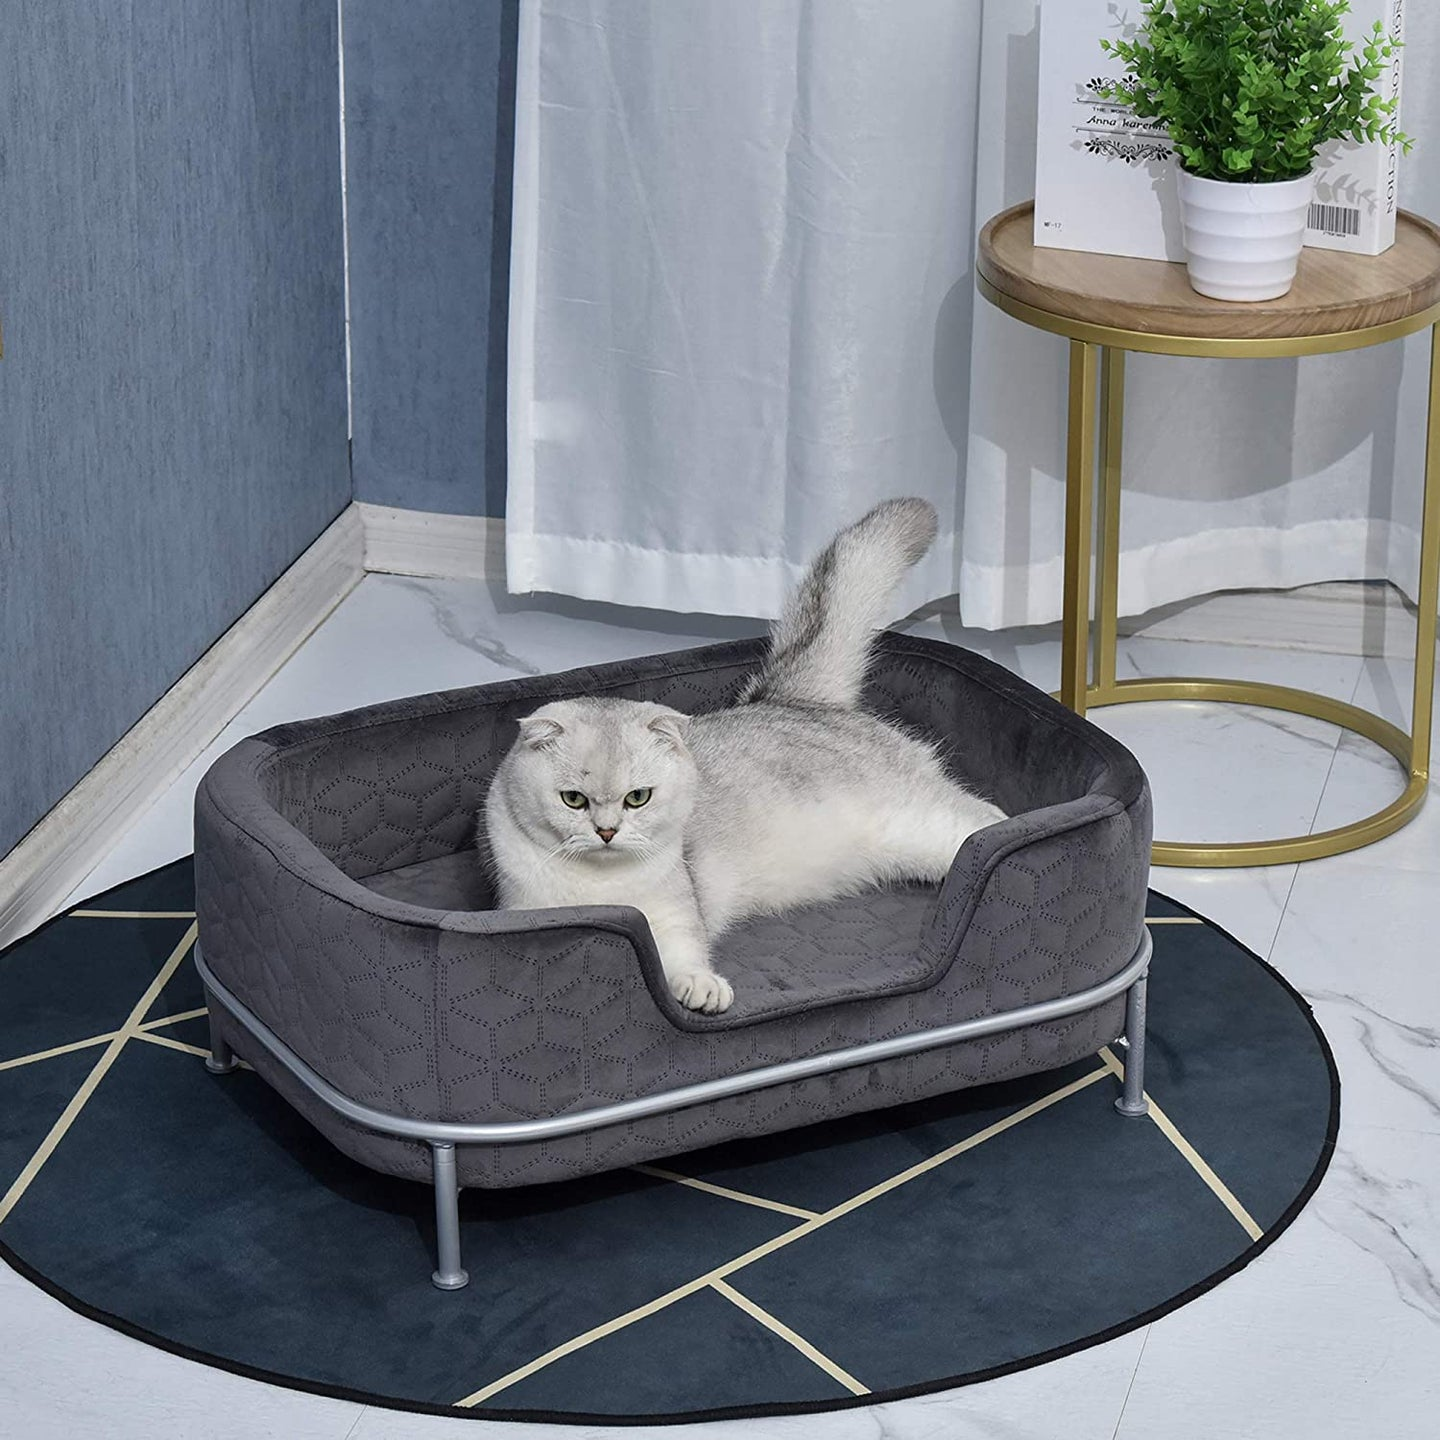 PawHut Pet Sofa Dog Bed Couch Cat Kitten Sponge Removable Cushion Lounge Metal Stand Elegant Bed Seat Furniture Grey 63.5 x 43 x 24.5 cm